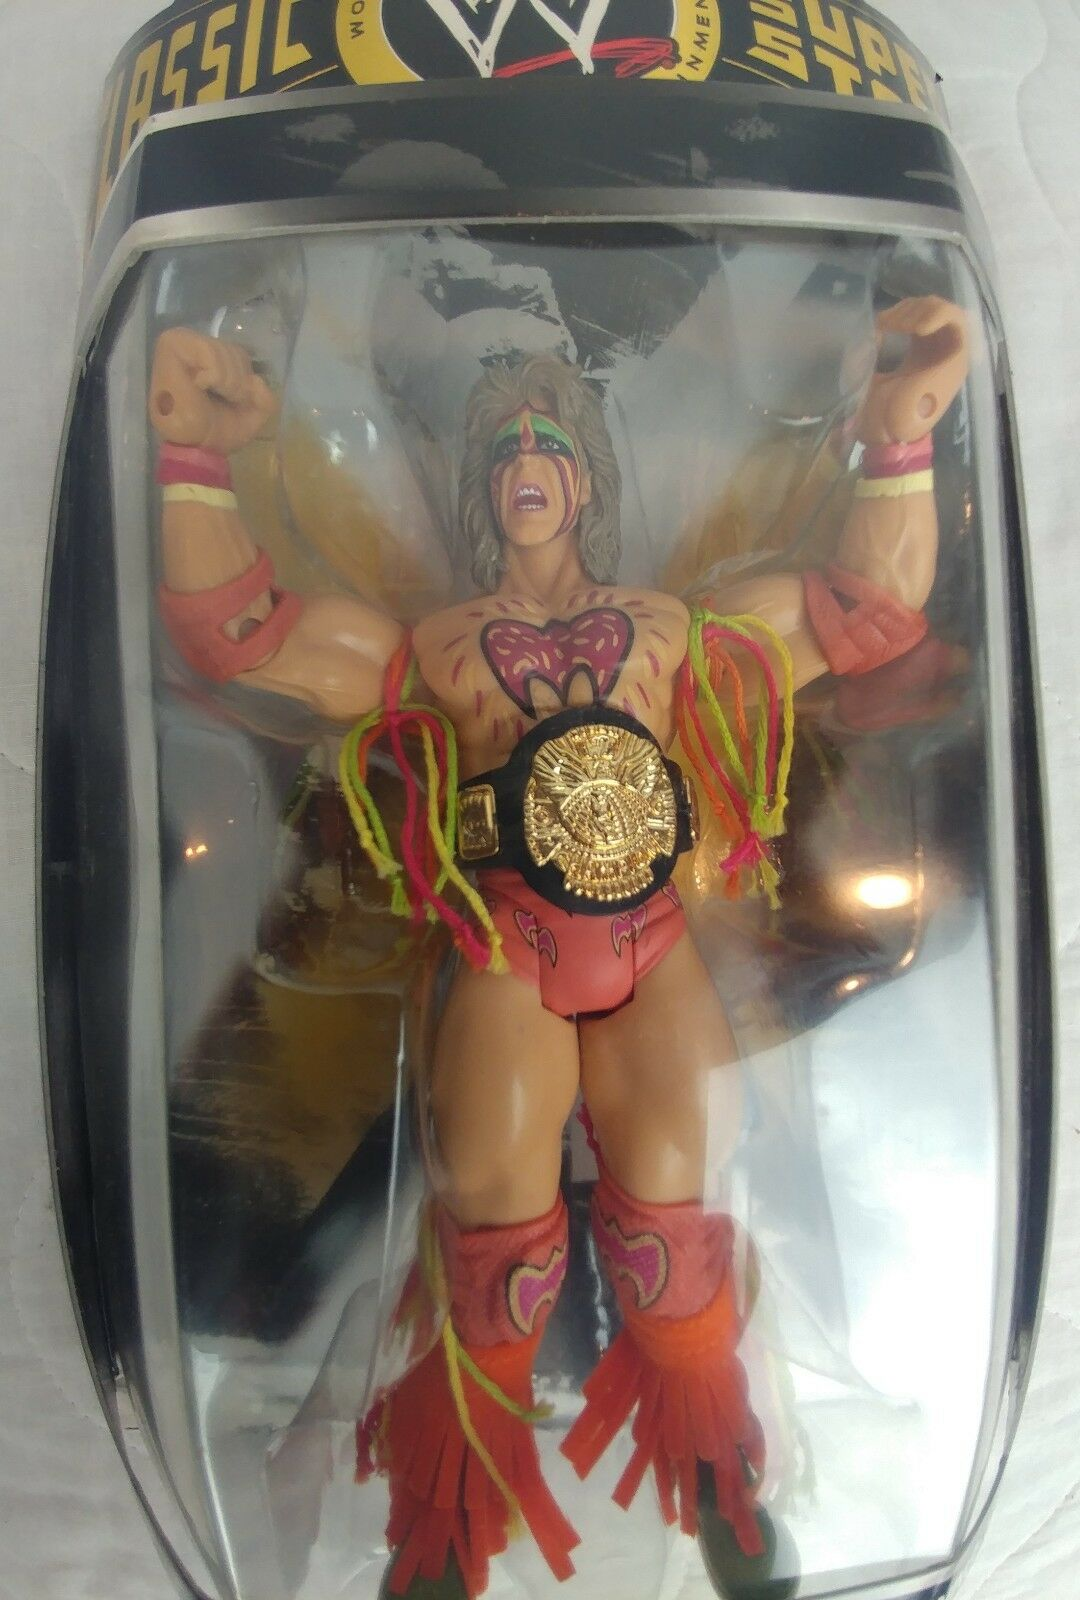 ULTIMATE WARRIOR WWE 2004 CLASSIC SUPER STARS ACTION FIGURE